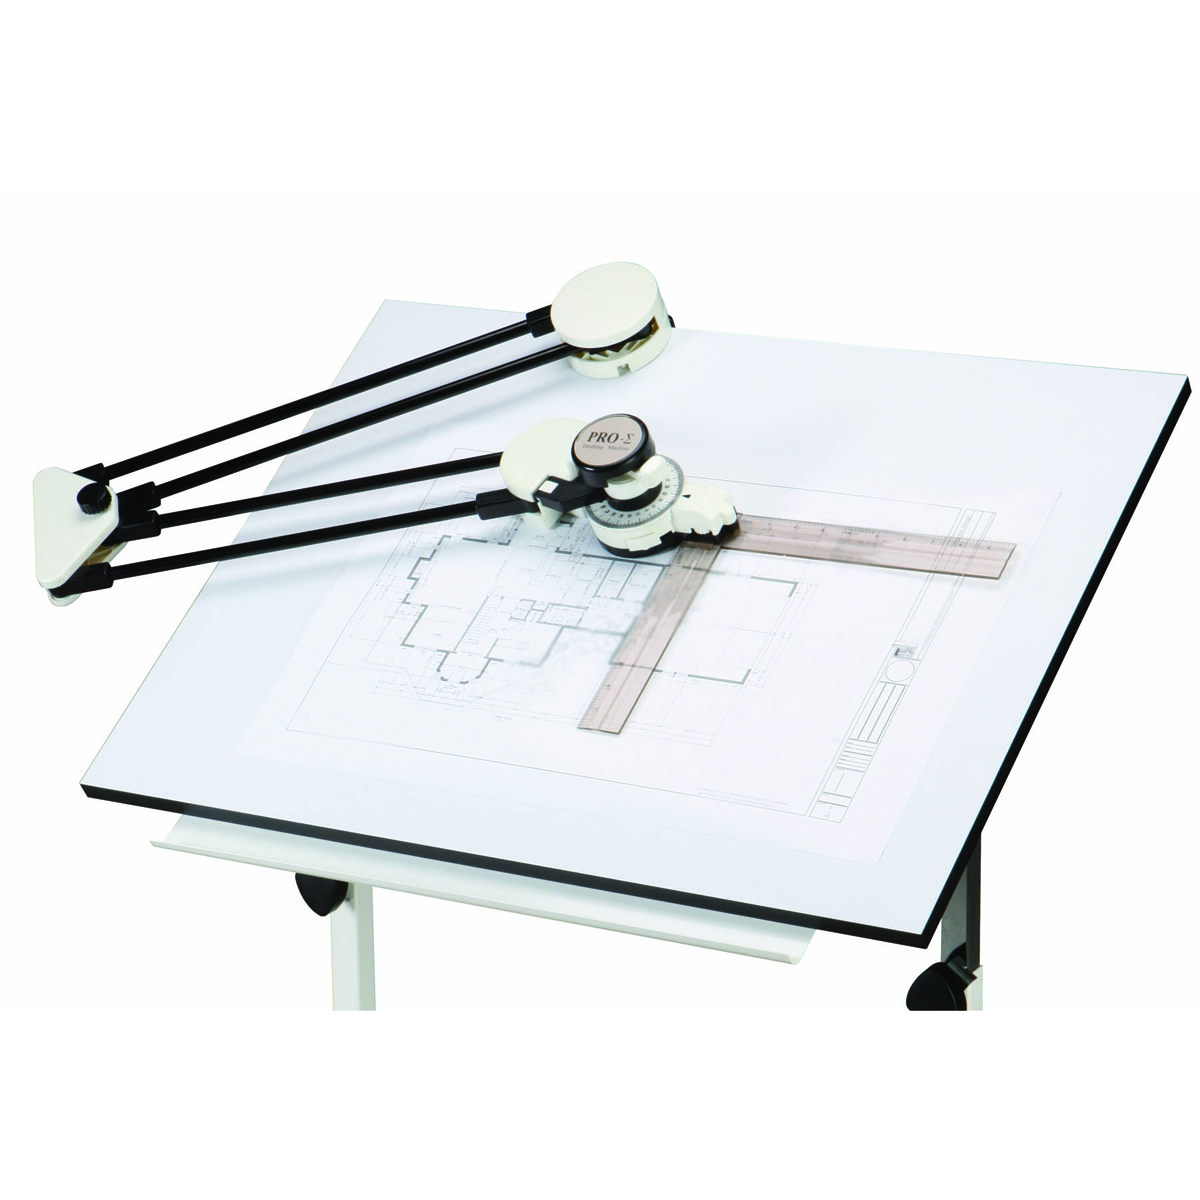 Tools Used In Drafting Equipment Or Instrument : Drafting machine